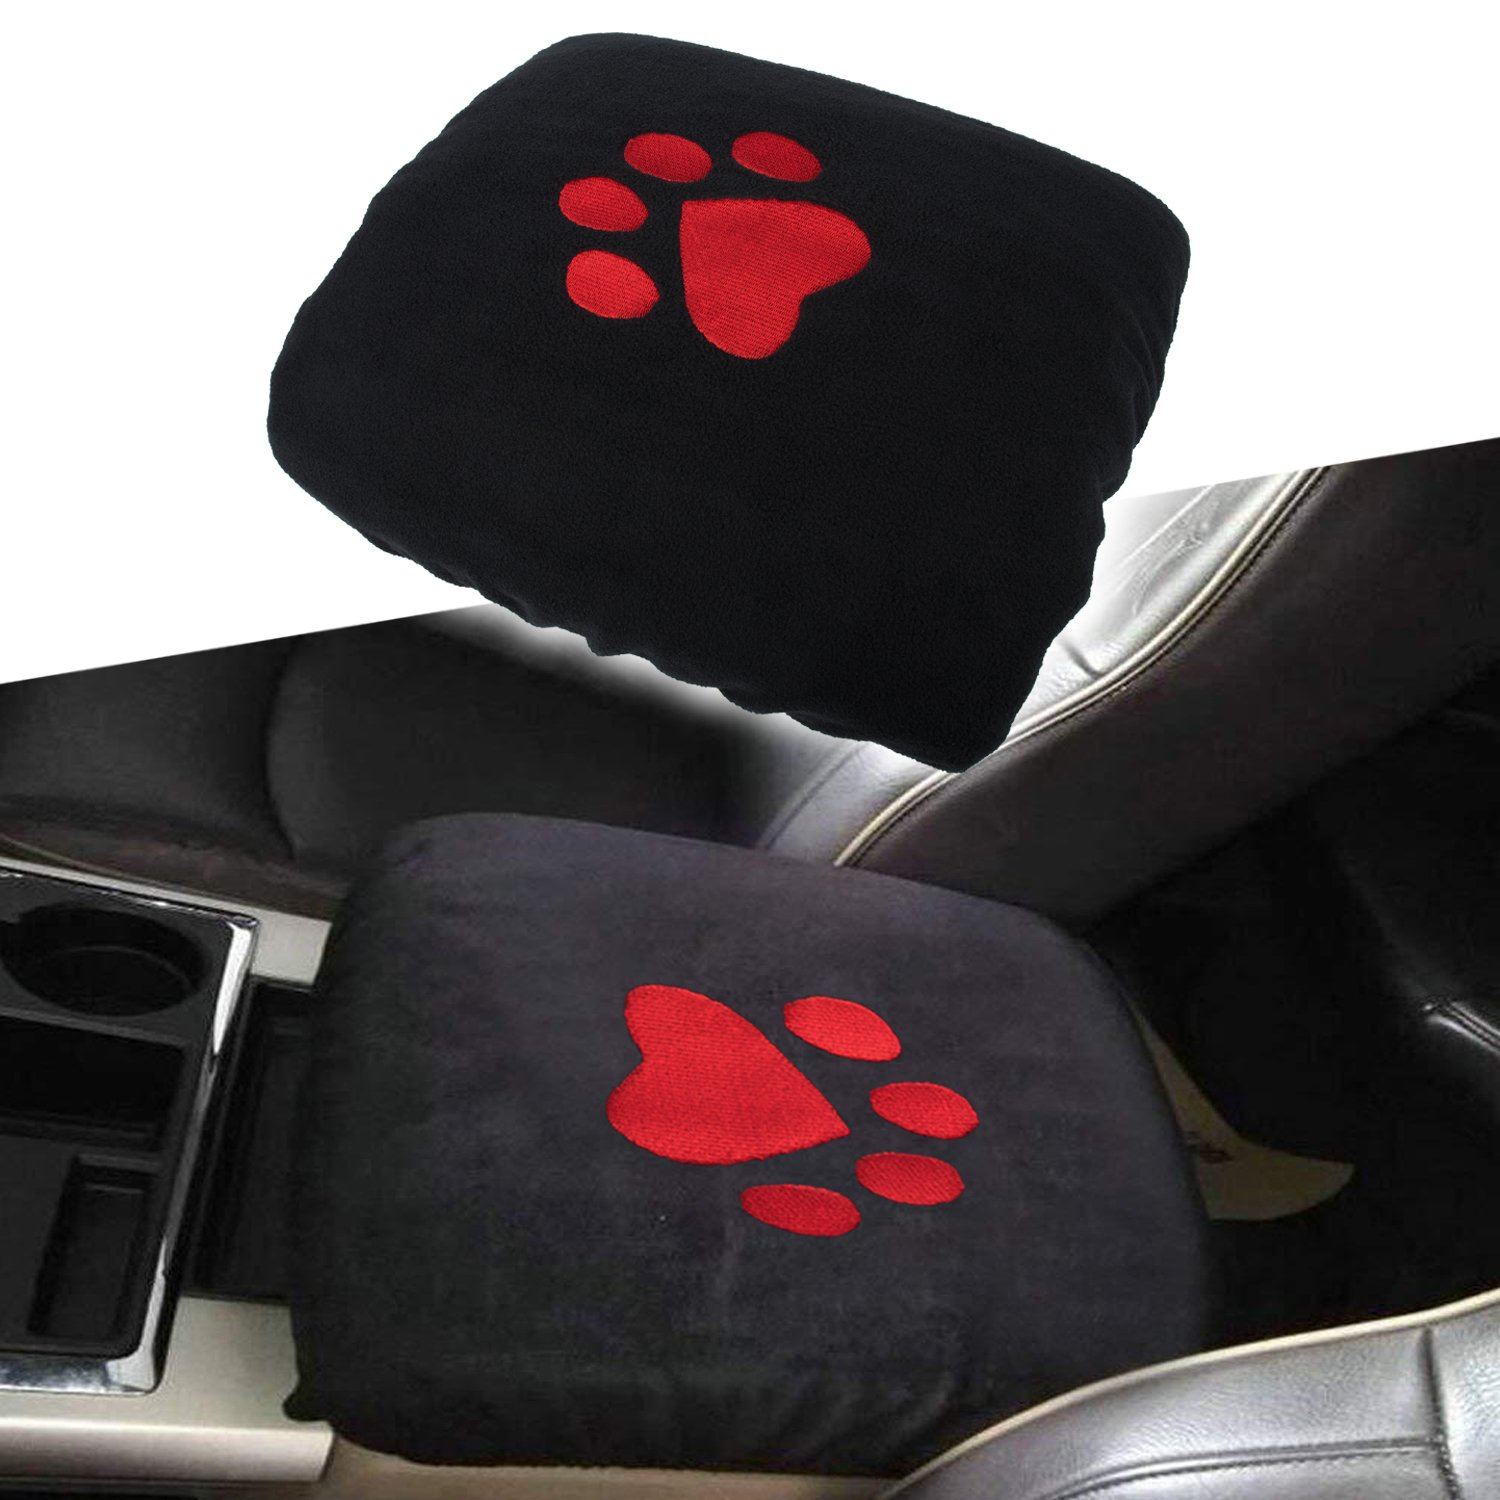 Center Console Armrest Pad Cover Dog Paw Sewing Logo Protector Cushion for Dodge Ram 1500 2500 3500 4500 5500 Pickup Trucks 1993-2018